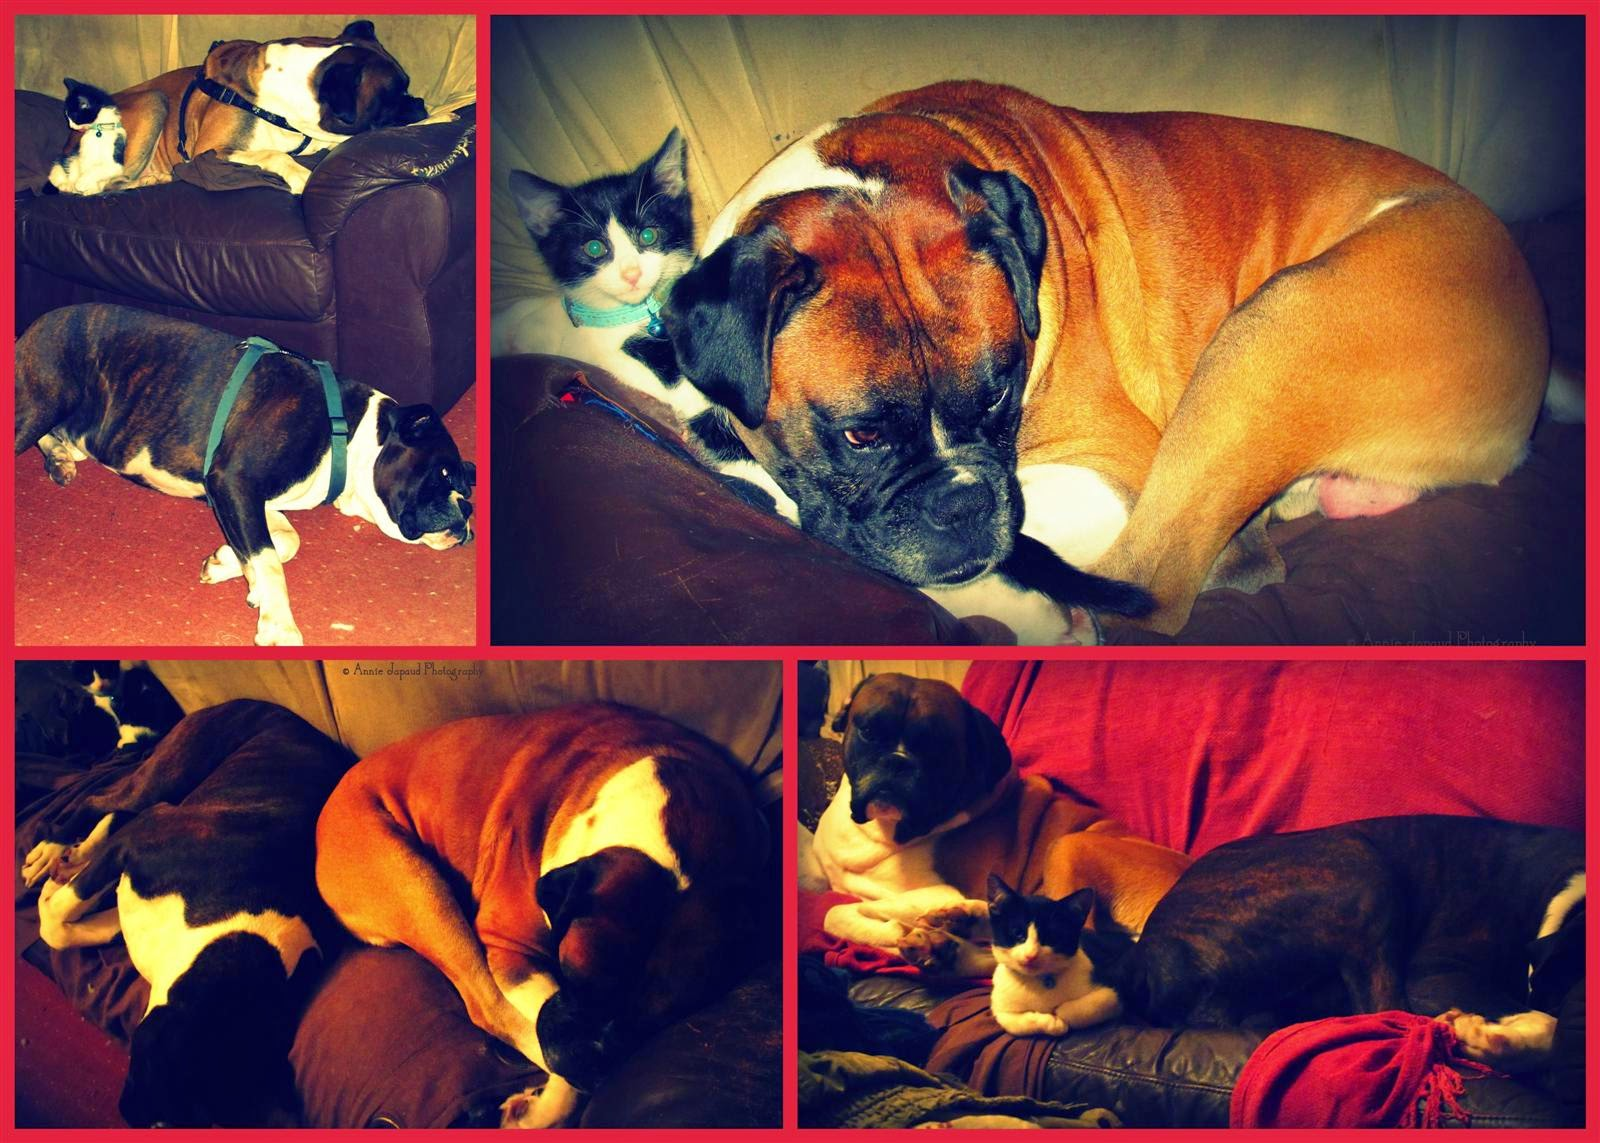 collage of images, 2 boxer dogs and a kitten on a sofa, sleeping